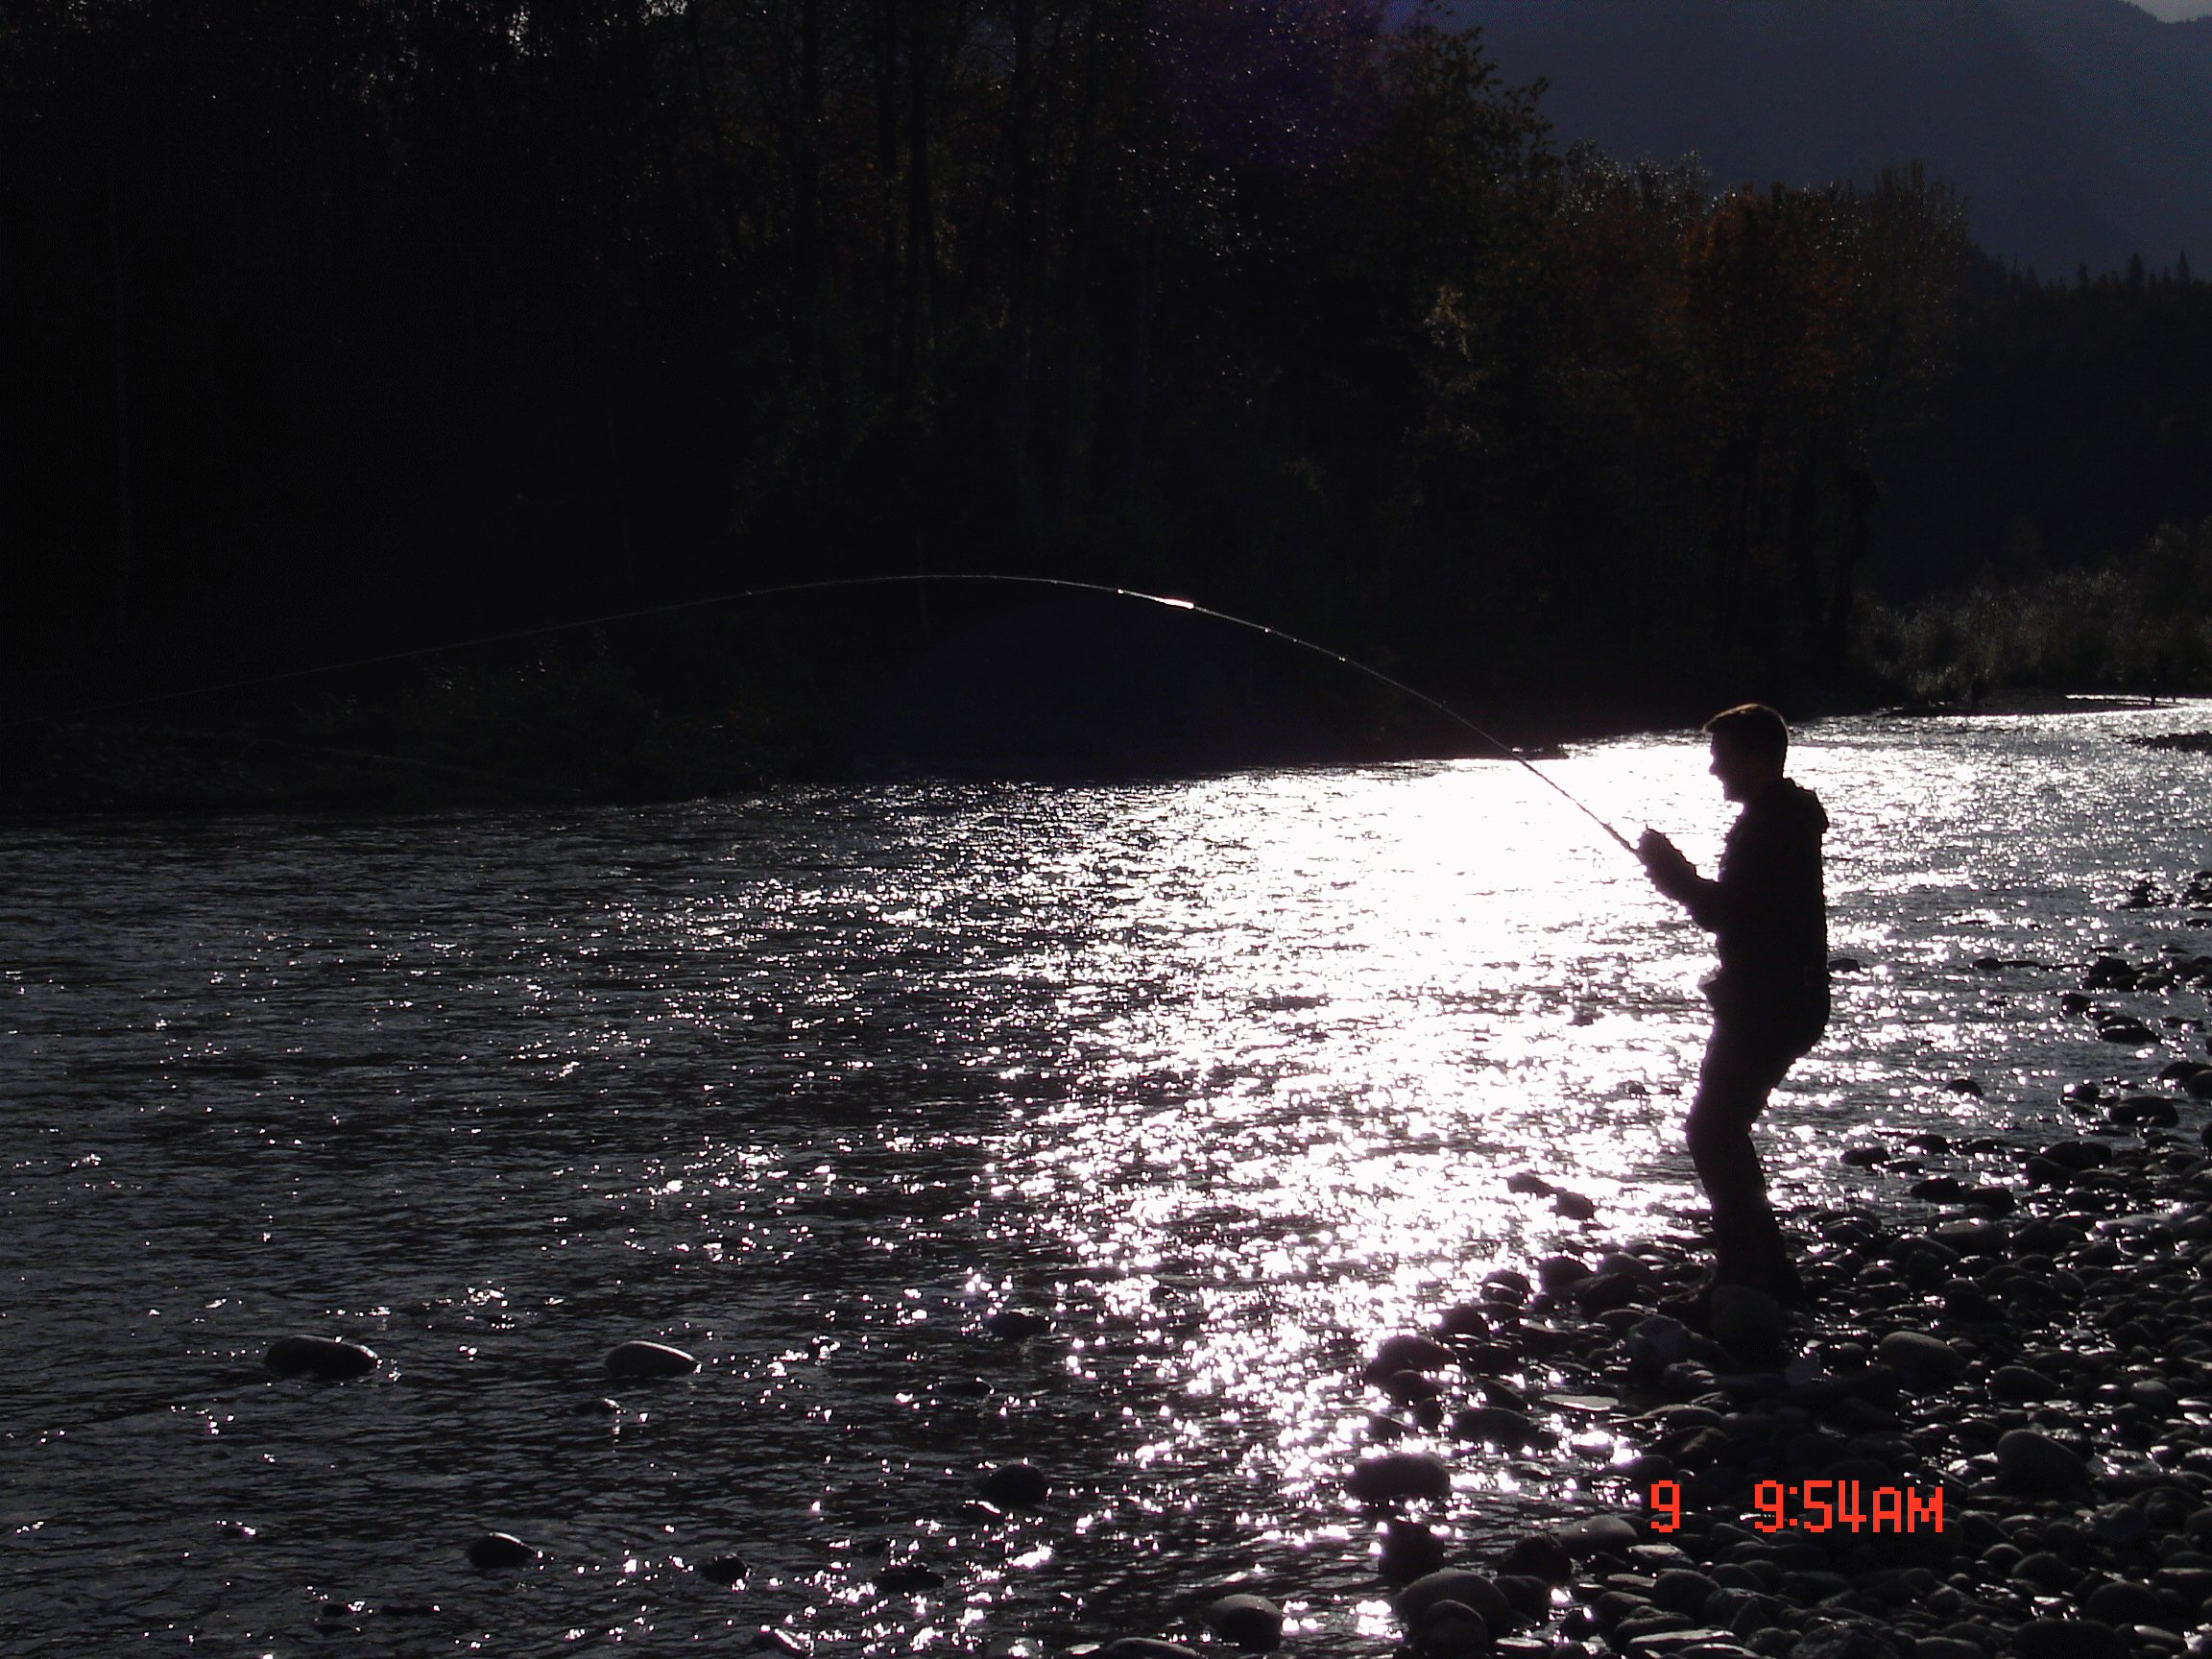 Chum salmon fishing in the evening.